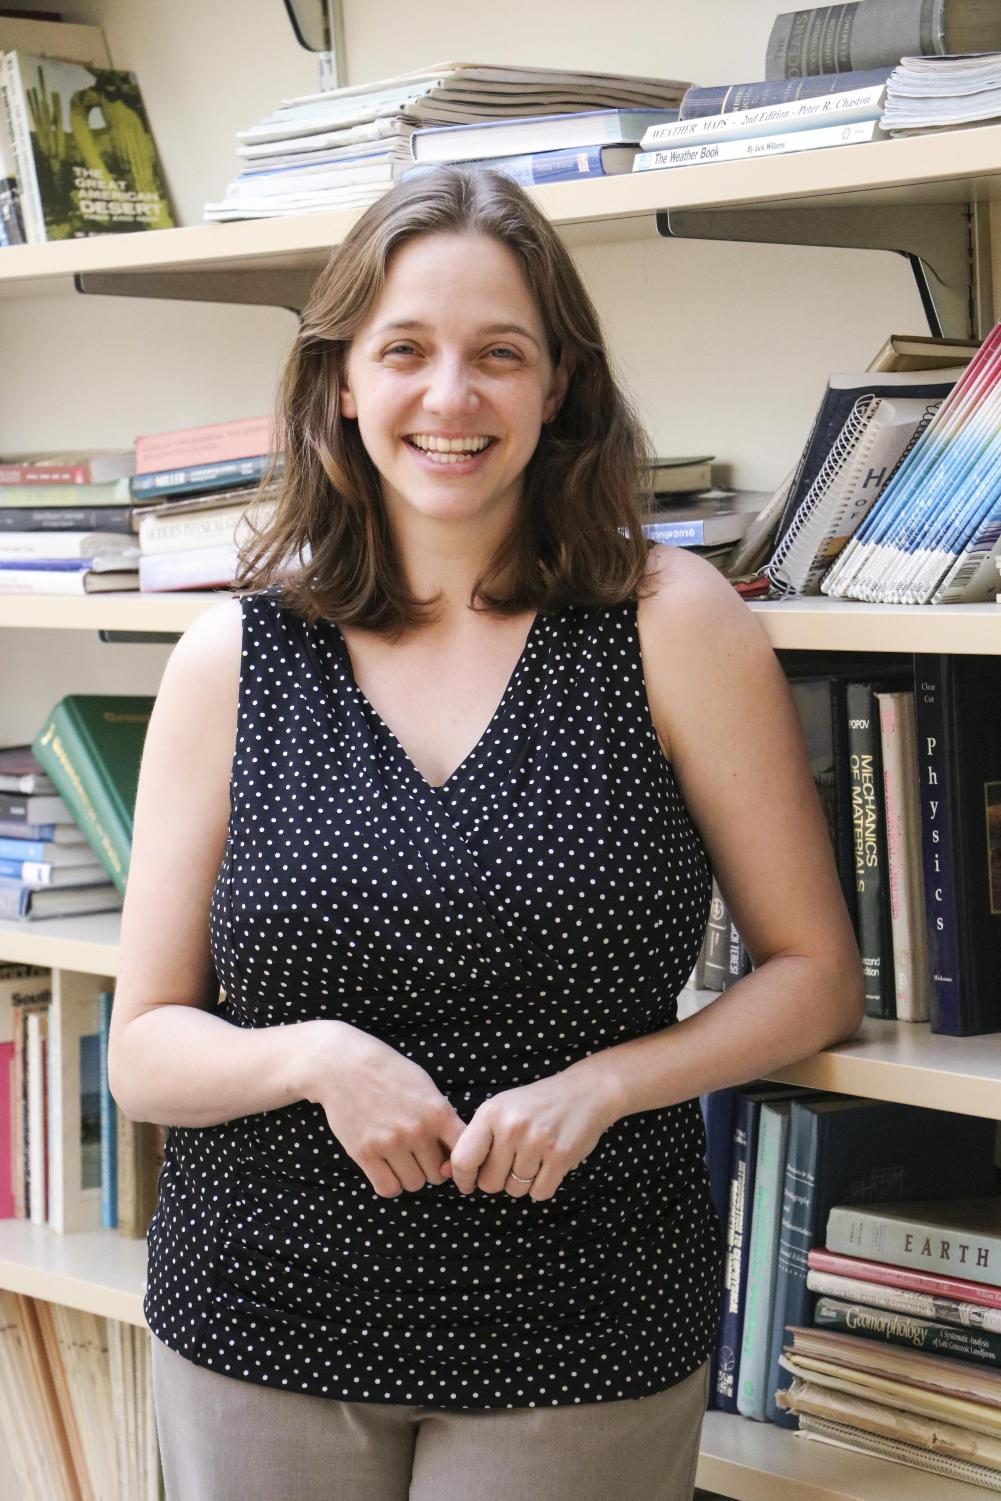 COD Professor of Physics Alexandra Bennett worked at Fermilab, and Europe's CERN's Compact Muon Solenoid, one of the detectors along the Large Hadron Collider